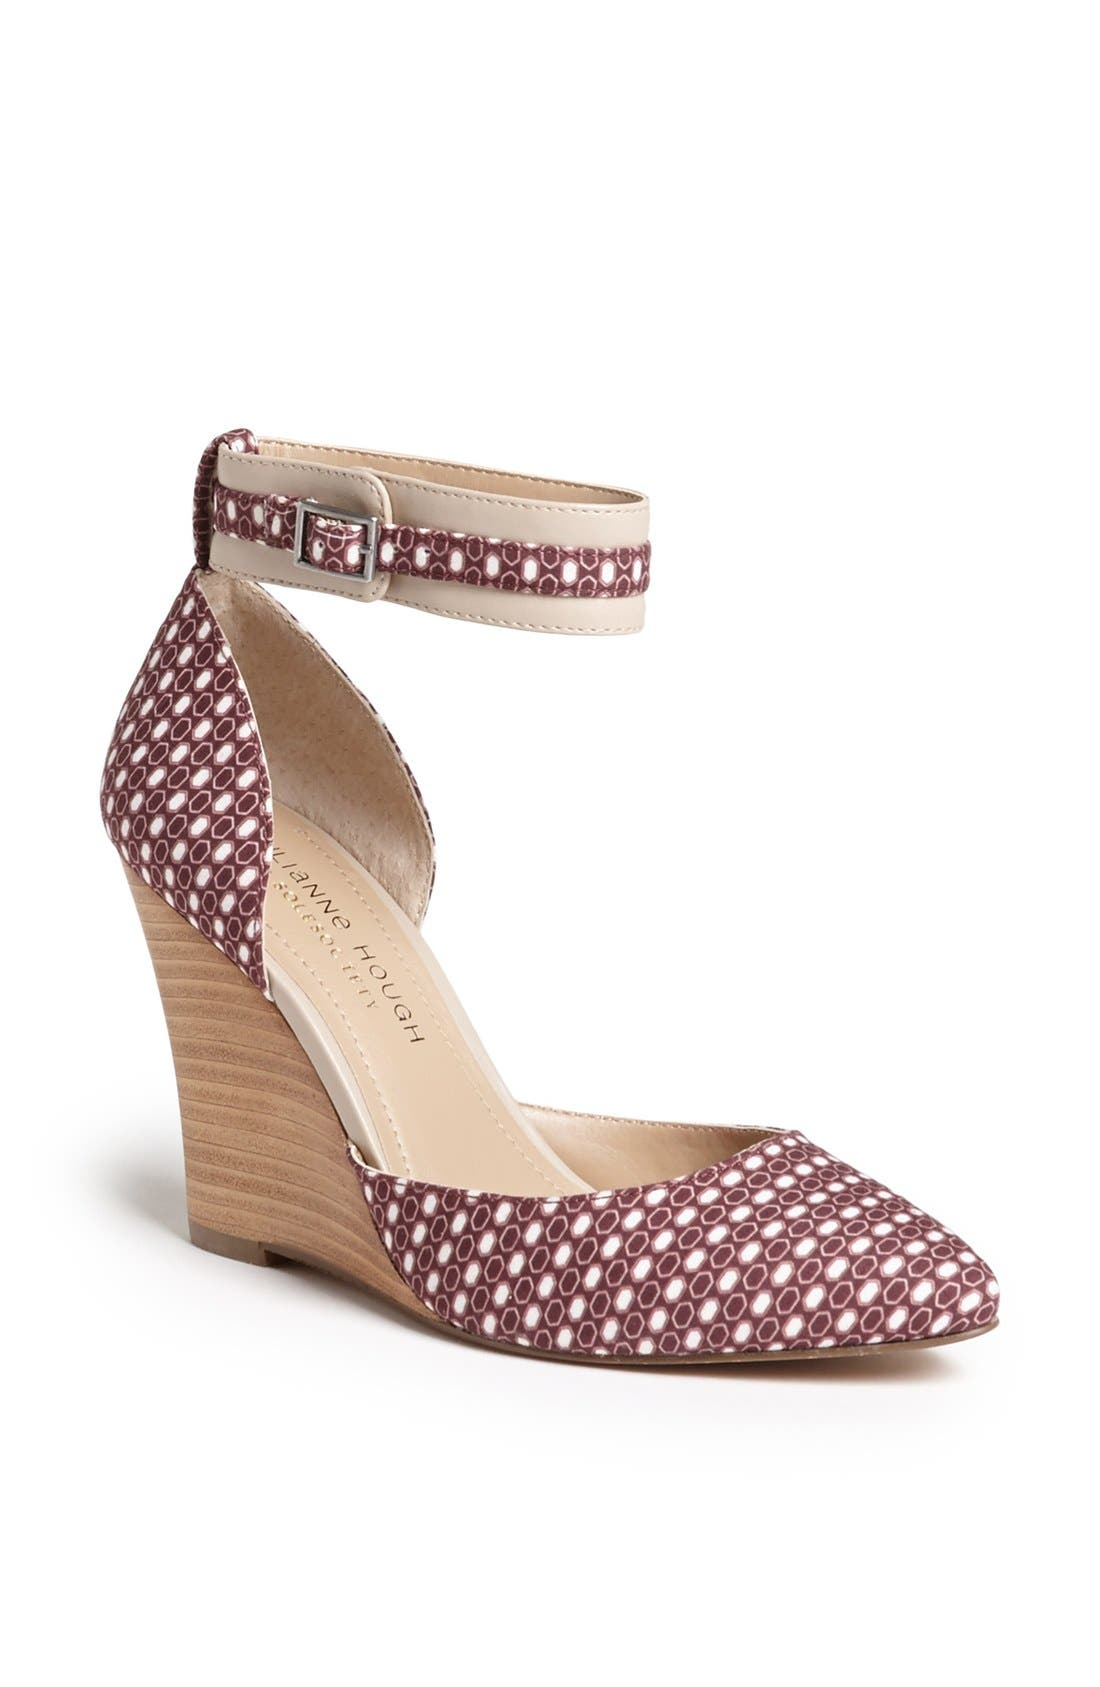 Alternate Image 1 Selected - Sole Society by Julianne Hough 'Caity' Ankle Strap Pump